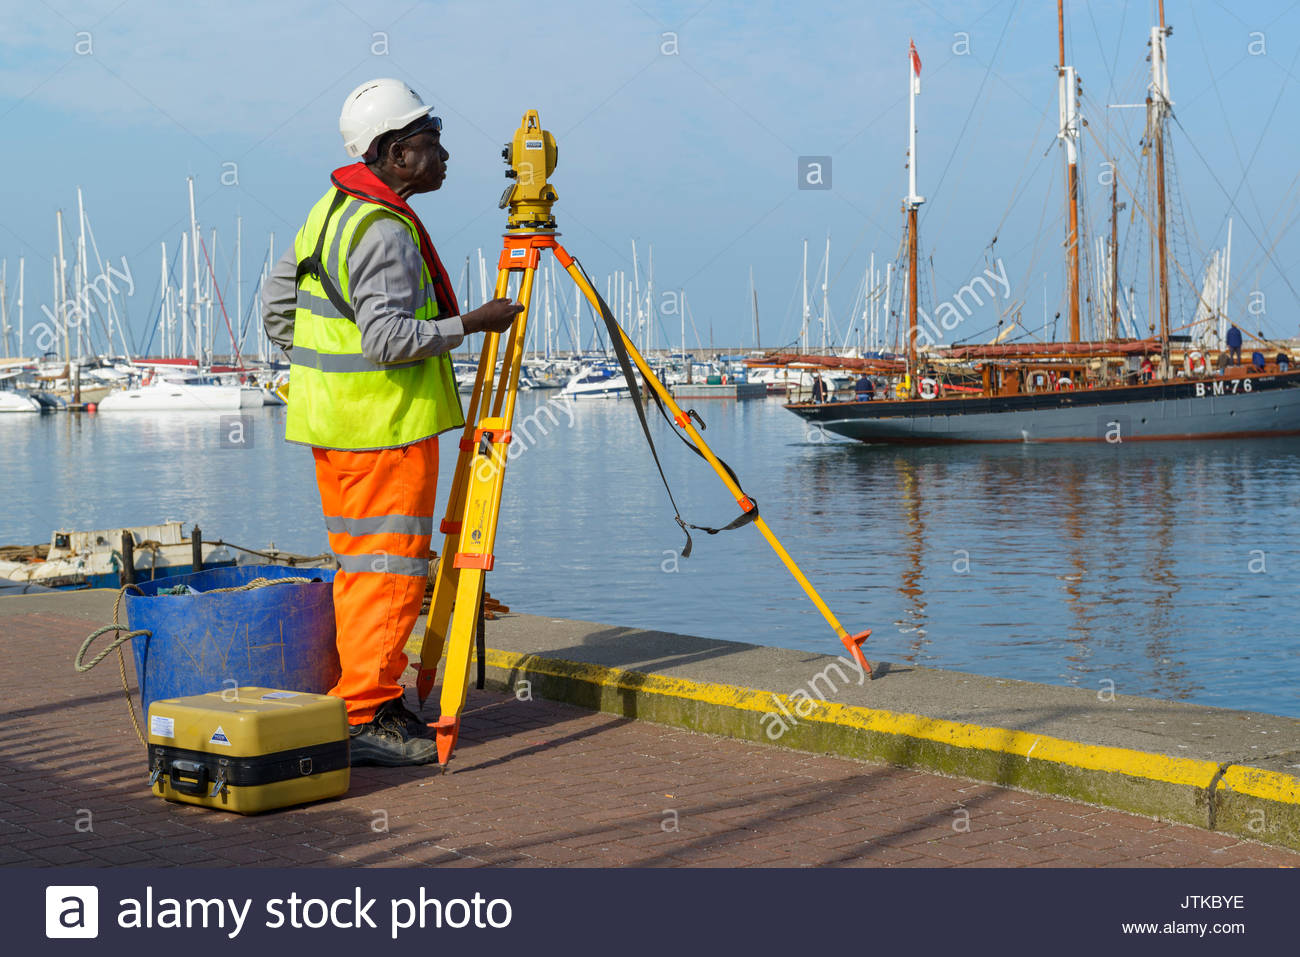 Surveyor, Brixham, Devon, England UK Europe - Stock Image